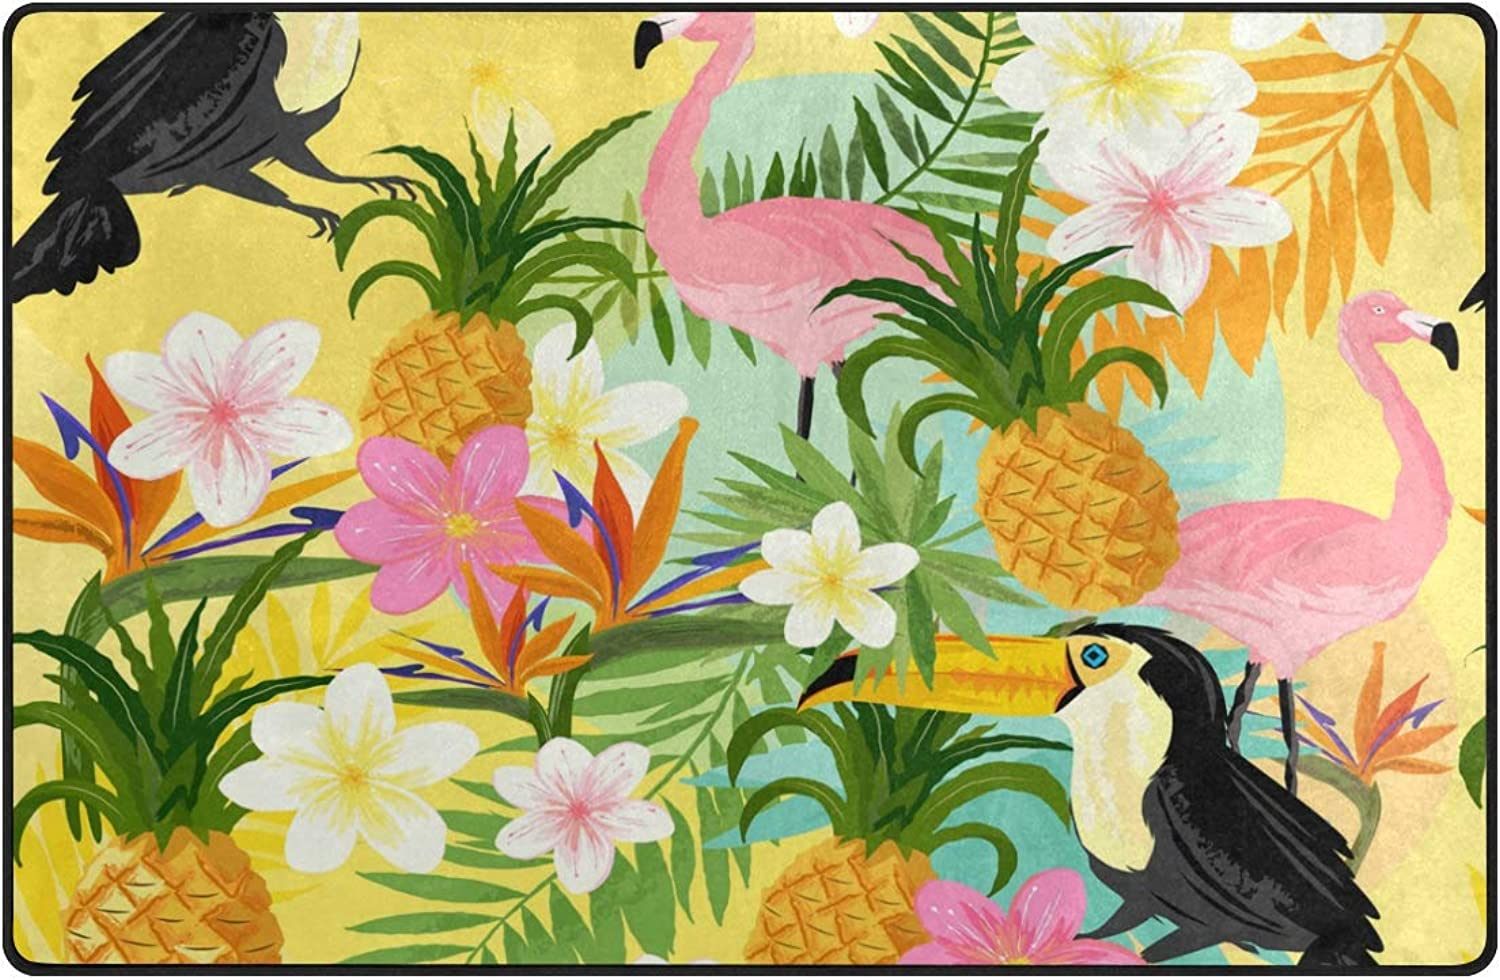 FAJRO Birds and Fruits Pattern Polyester Doormat Dirt Trapper Area Rug Multipattern Door Mat shoes Scraper Home Dec Anti-Slip Indoor Outdoor